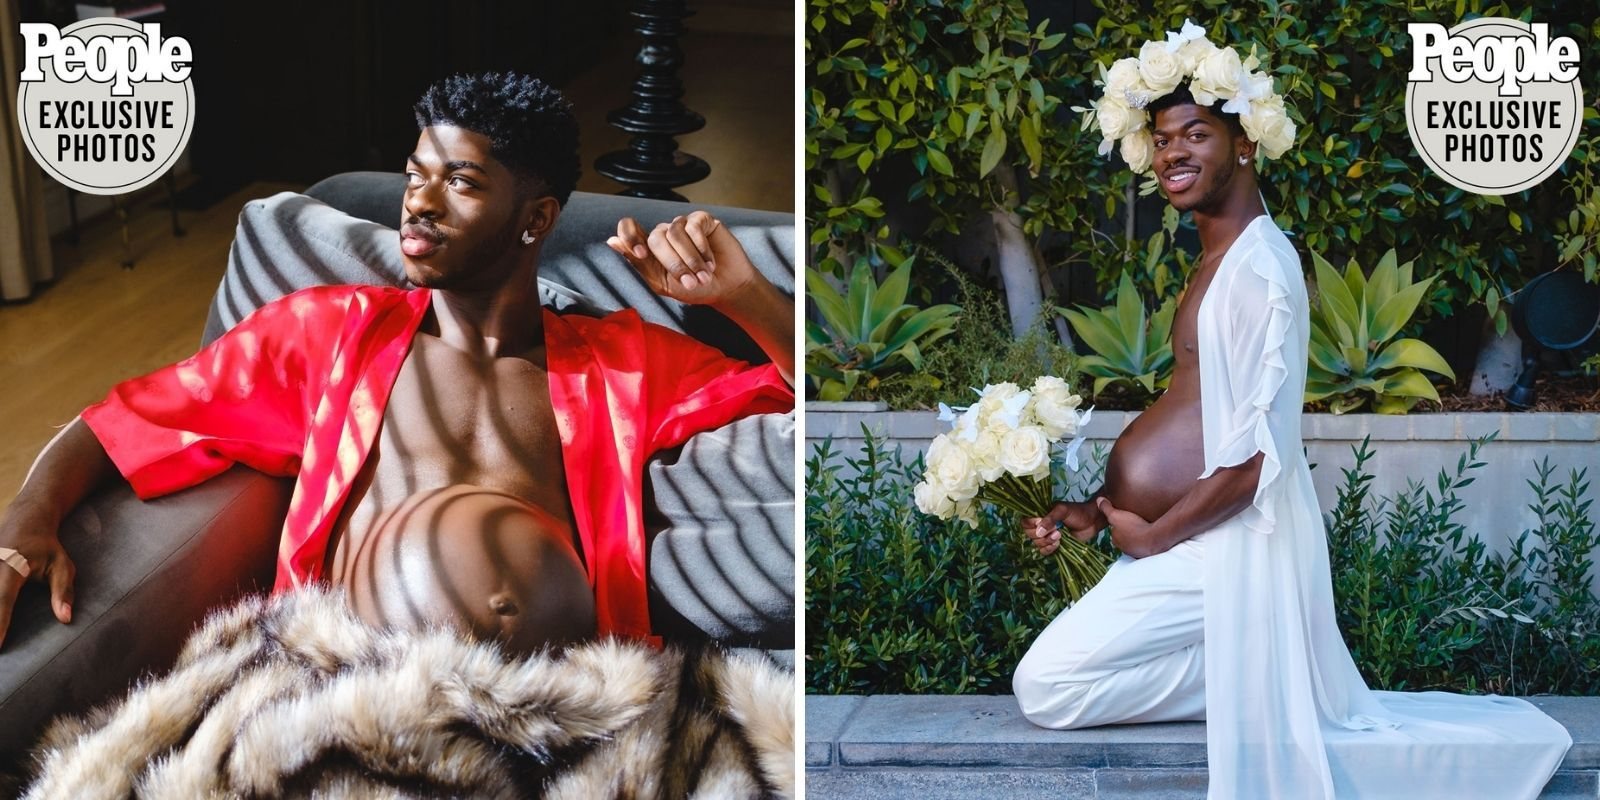 Lil Nas X poses as pregnant man in bizarre new photo shoot